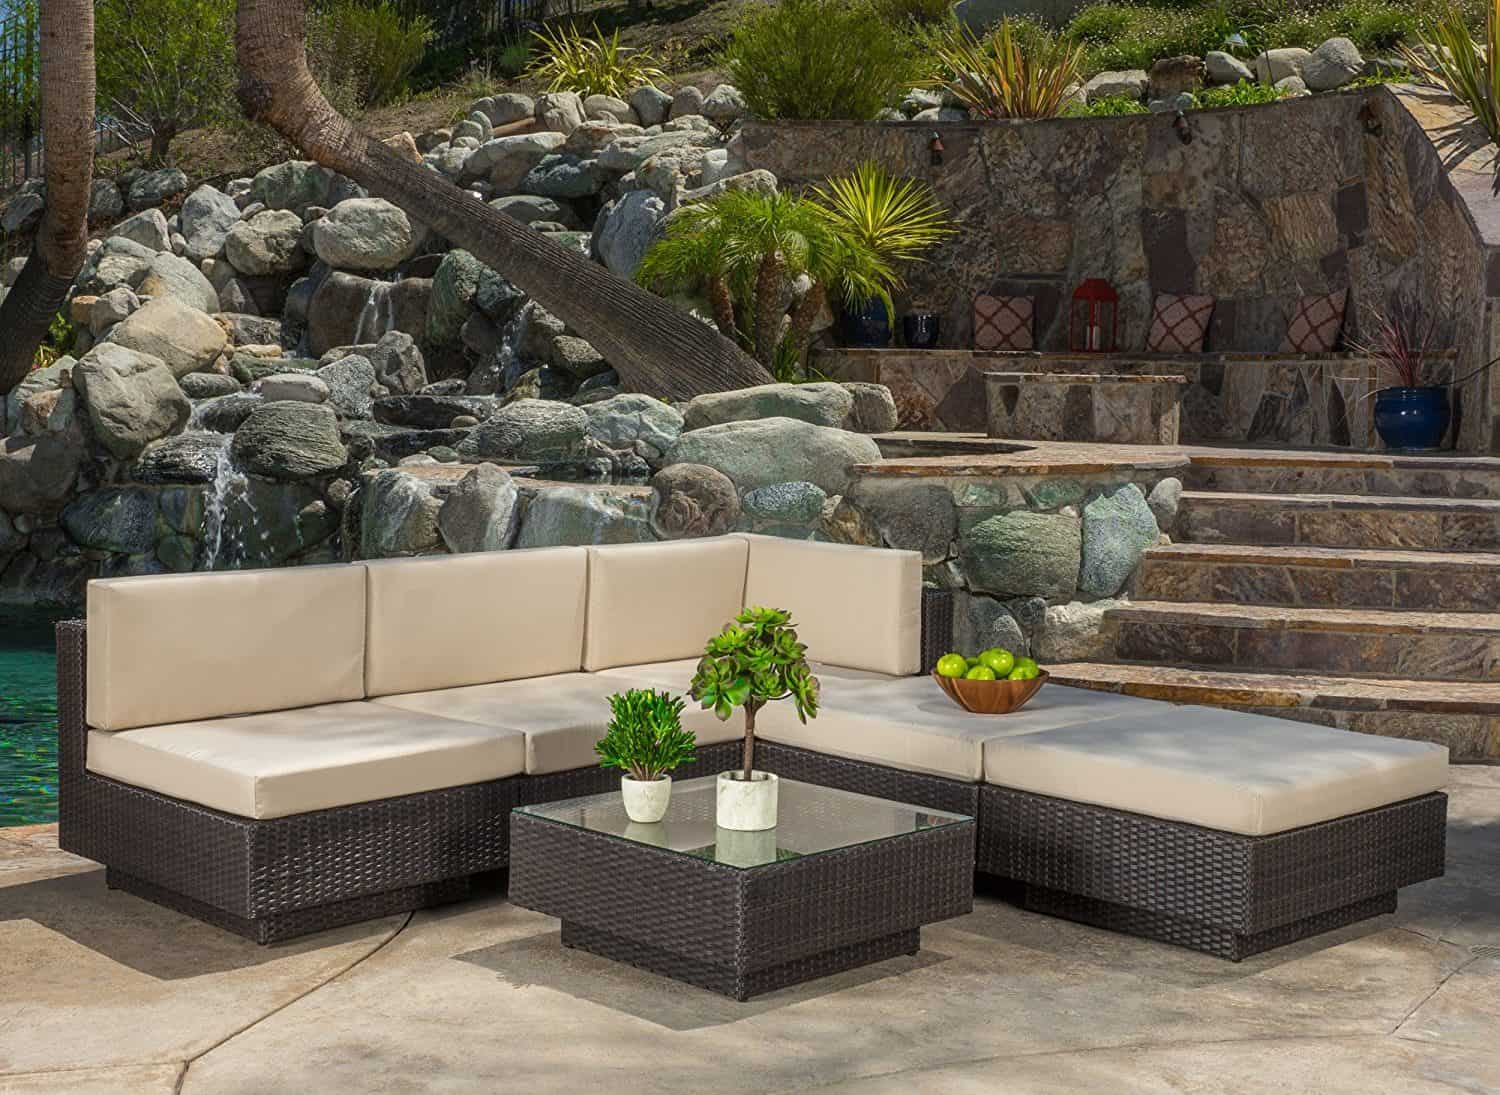 50 Best Outdoor Wicker Furniture Ideas For 2021 Photos